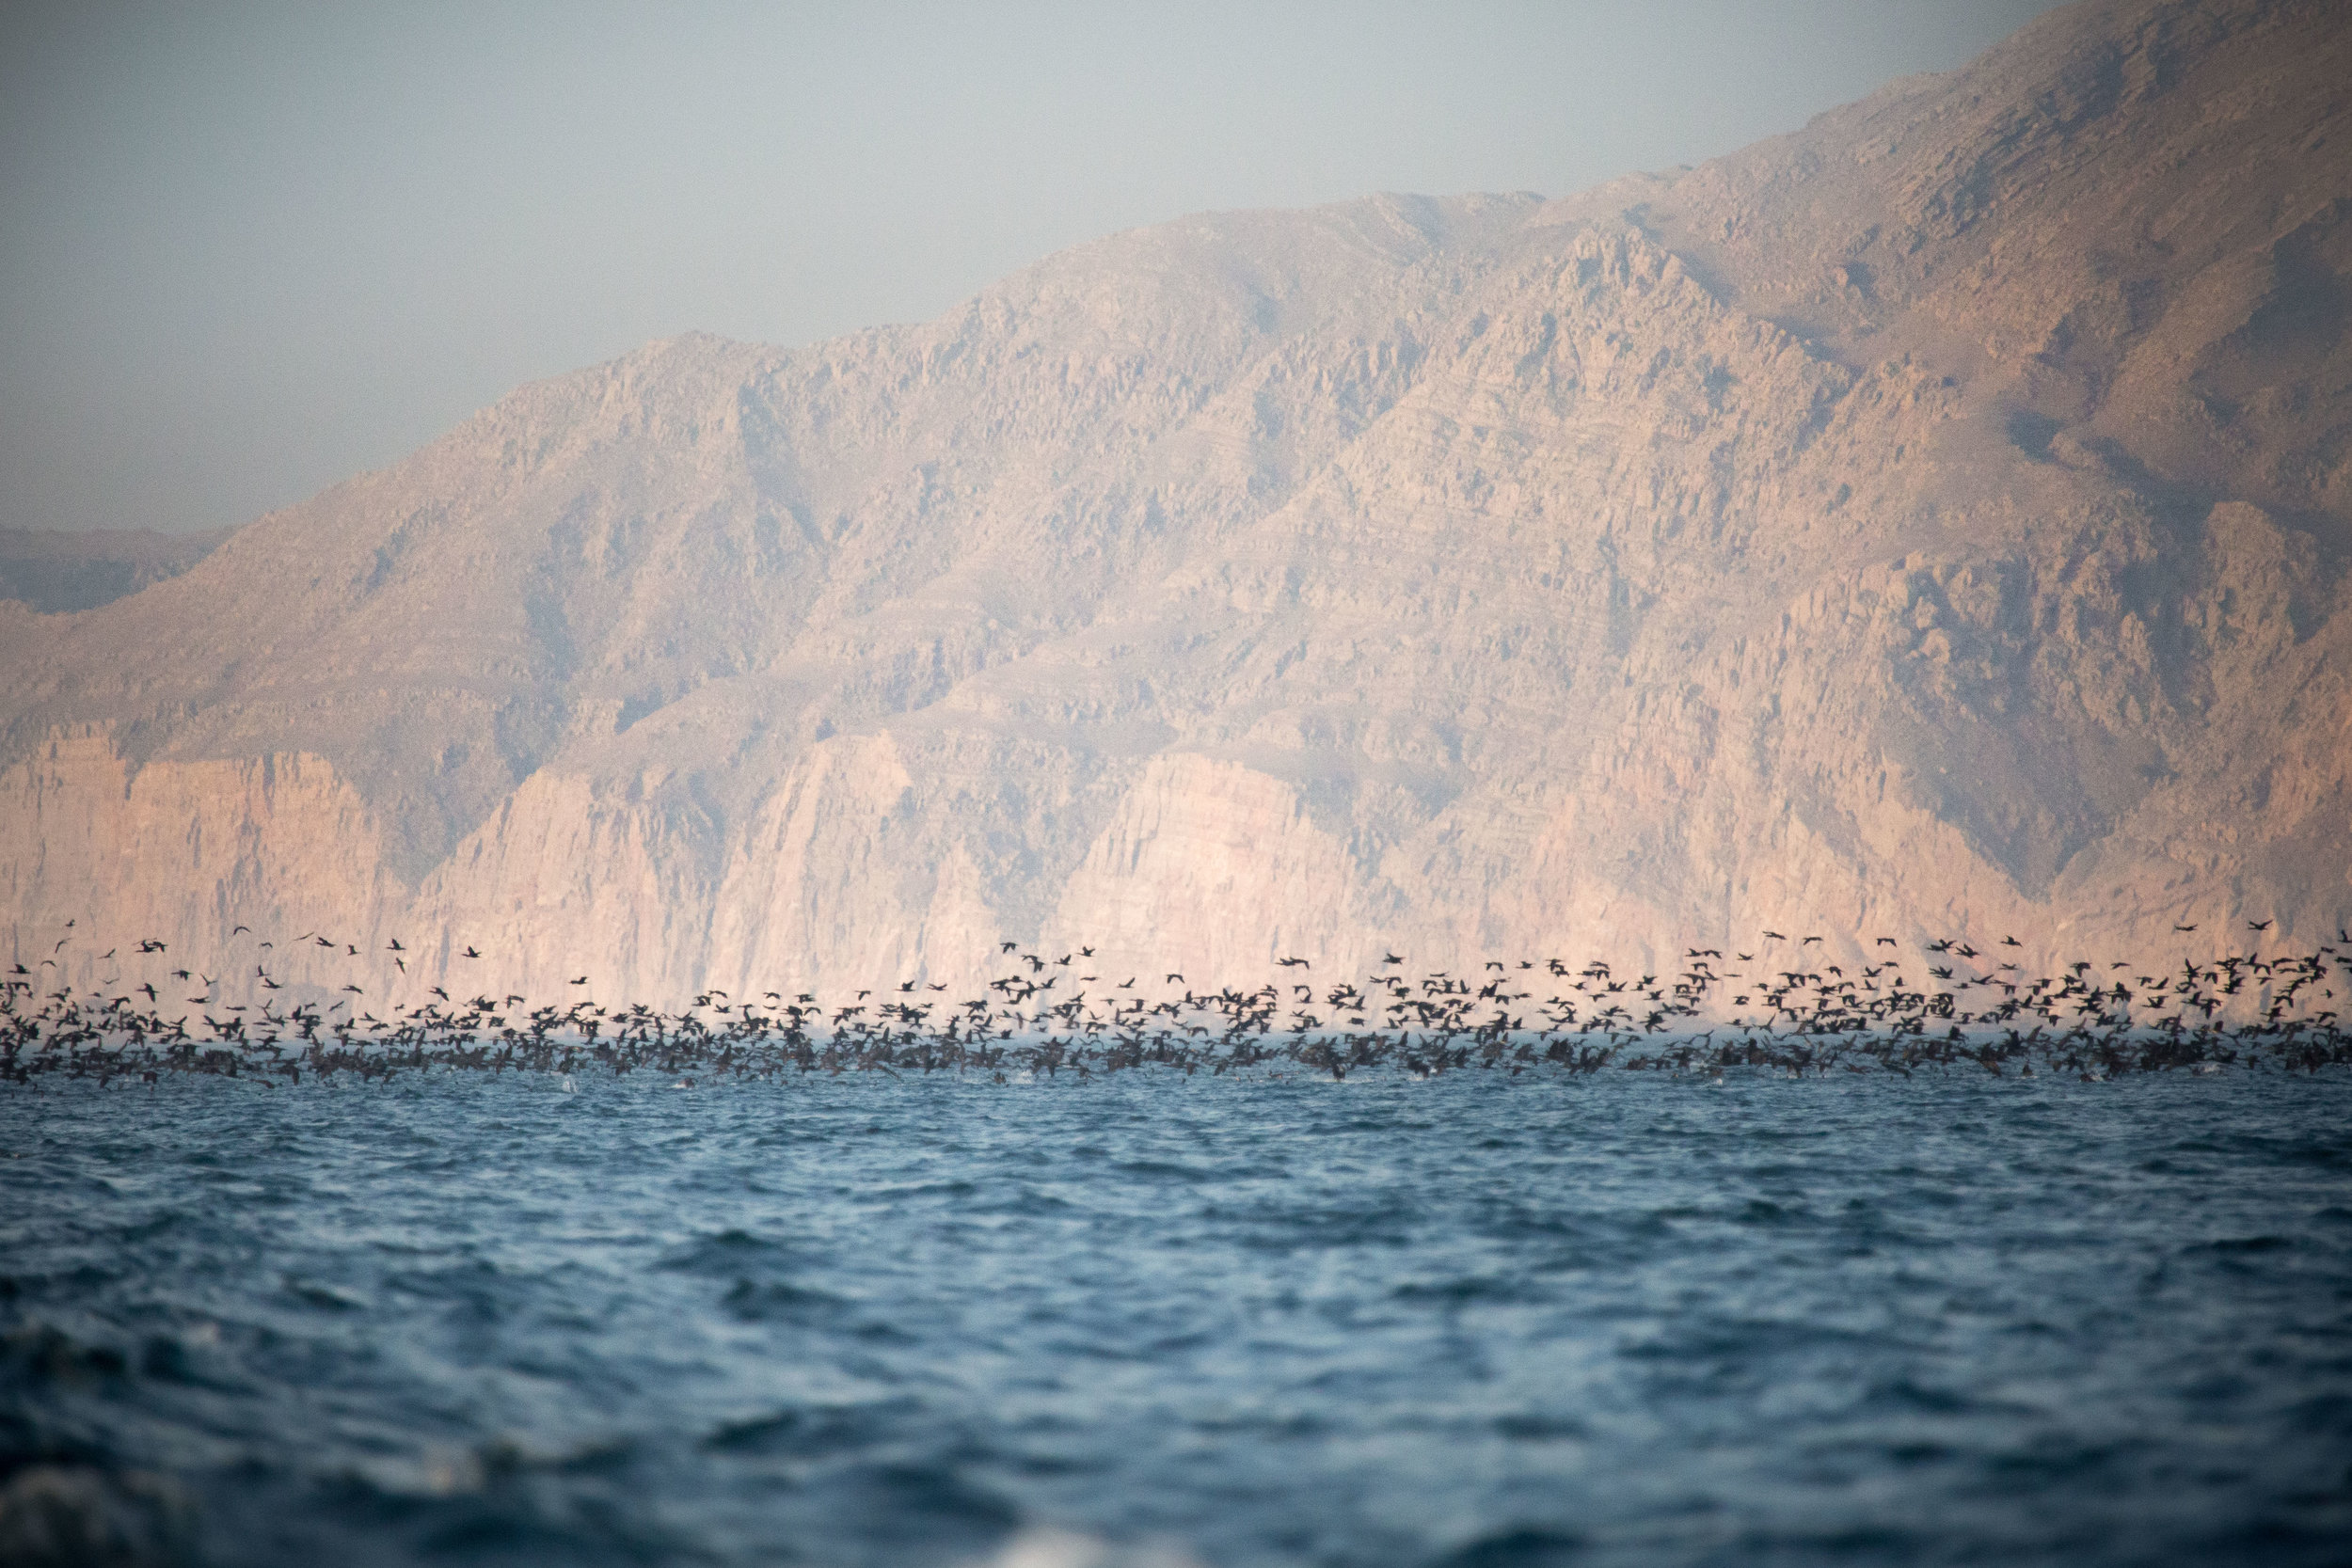 A flock of Socotra cormorants feeding near the Khasab shore.jpg